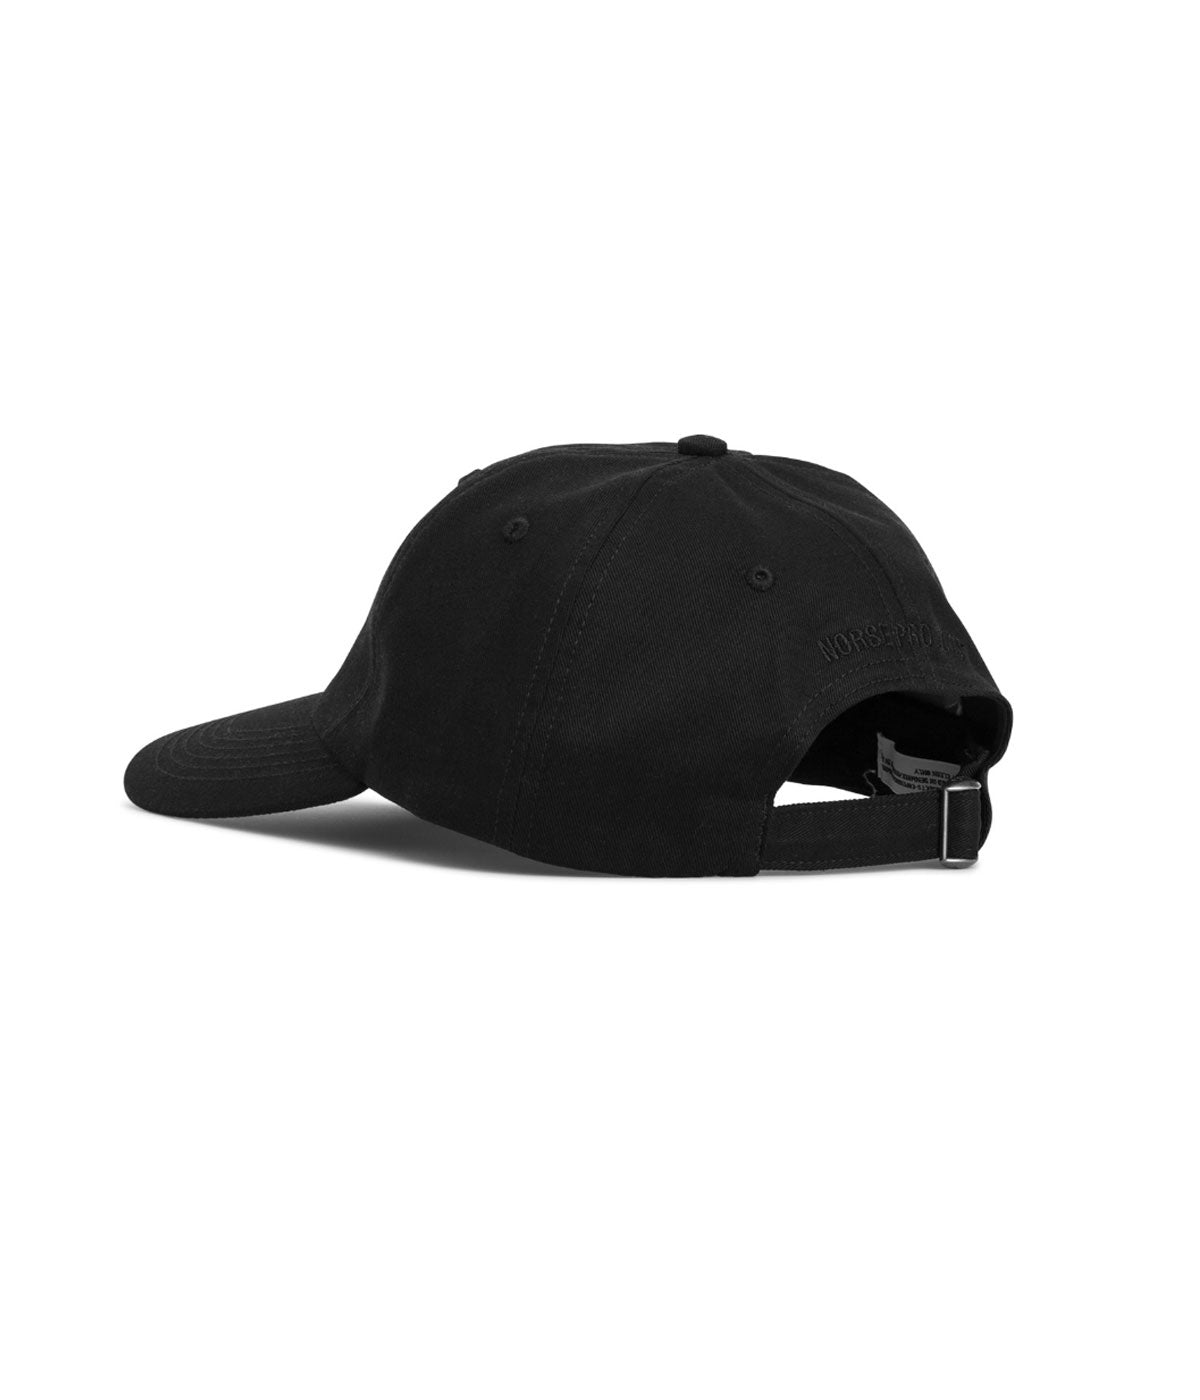 Norse Projects Twill Sports Cap Black